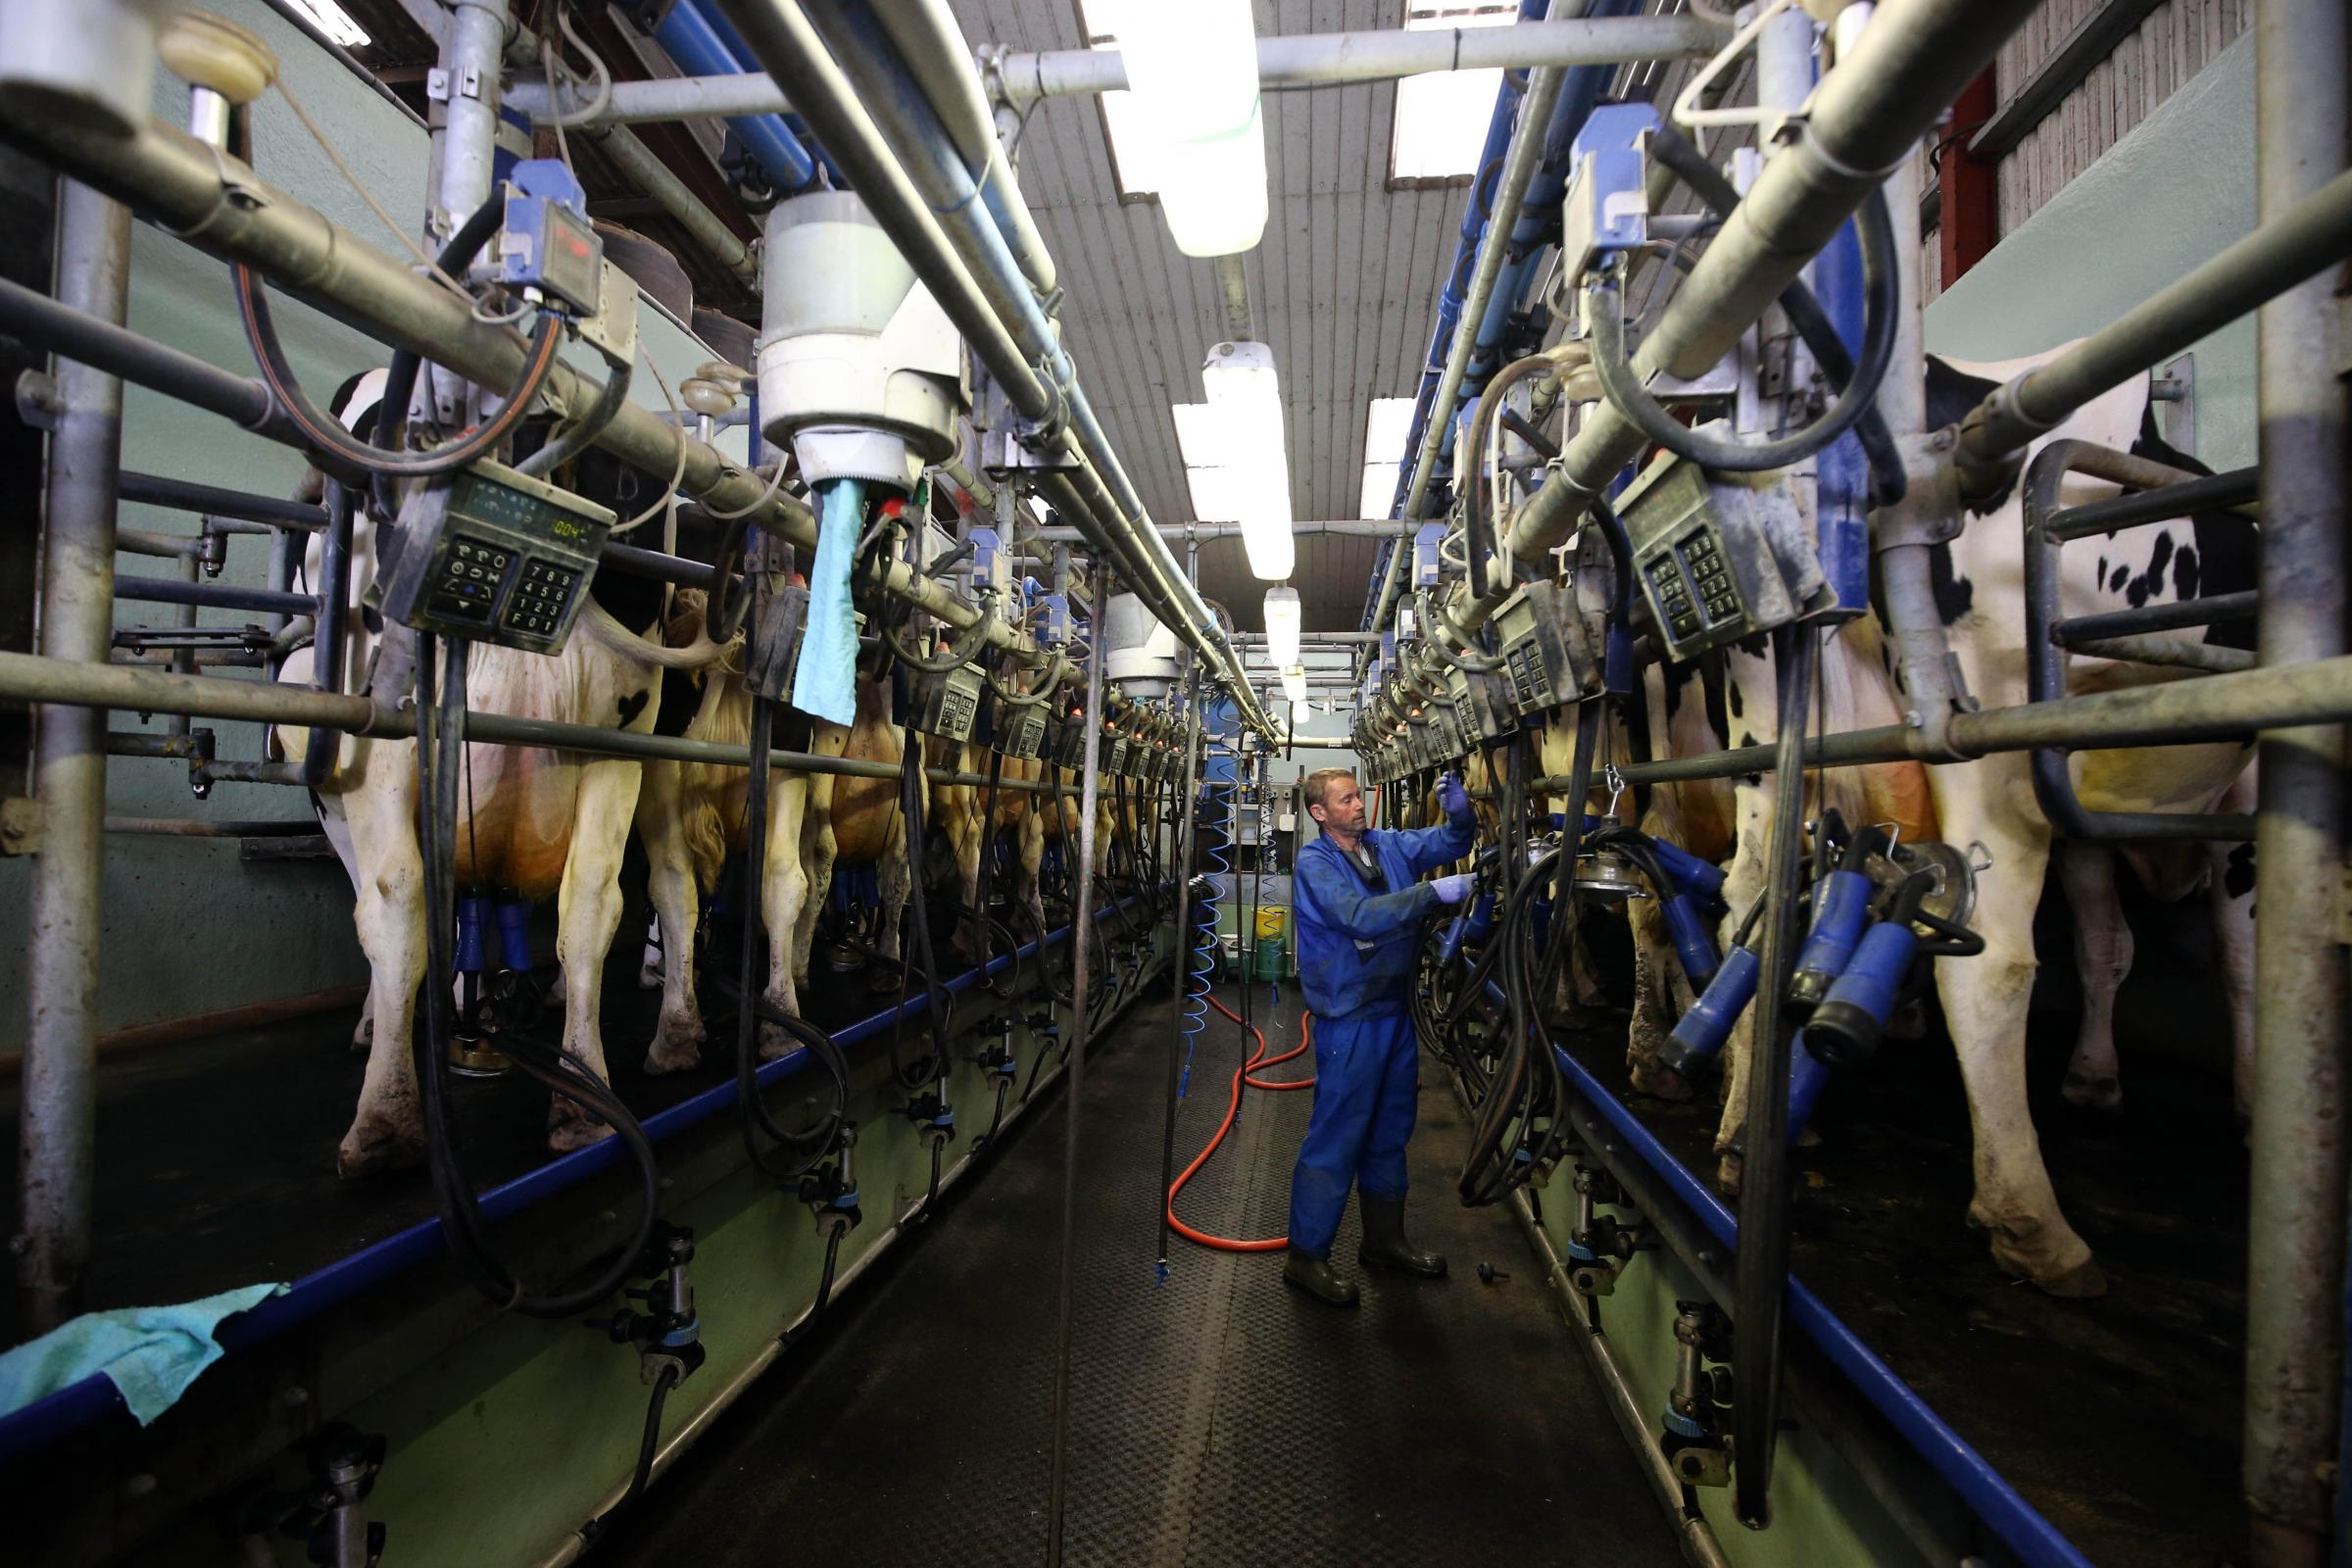 Farmer William Westacott milking cows